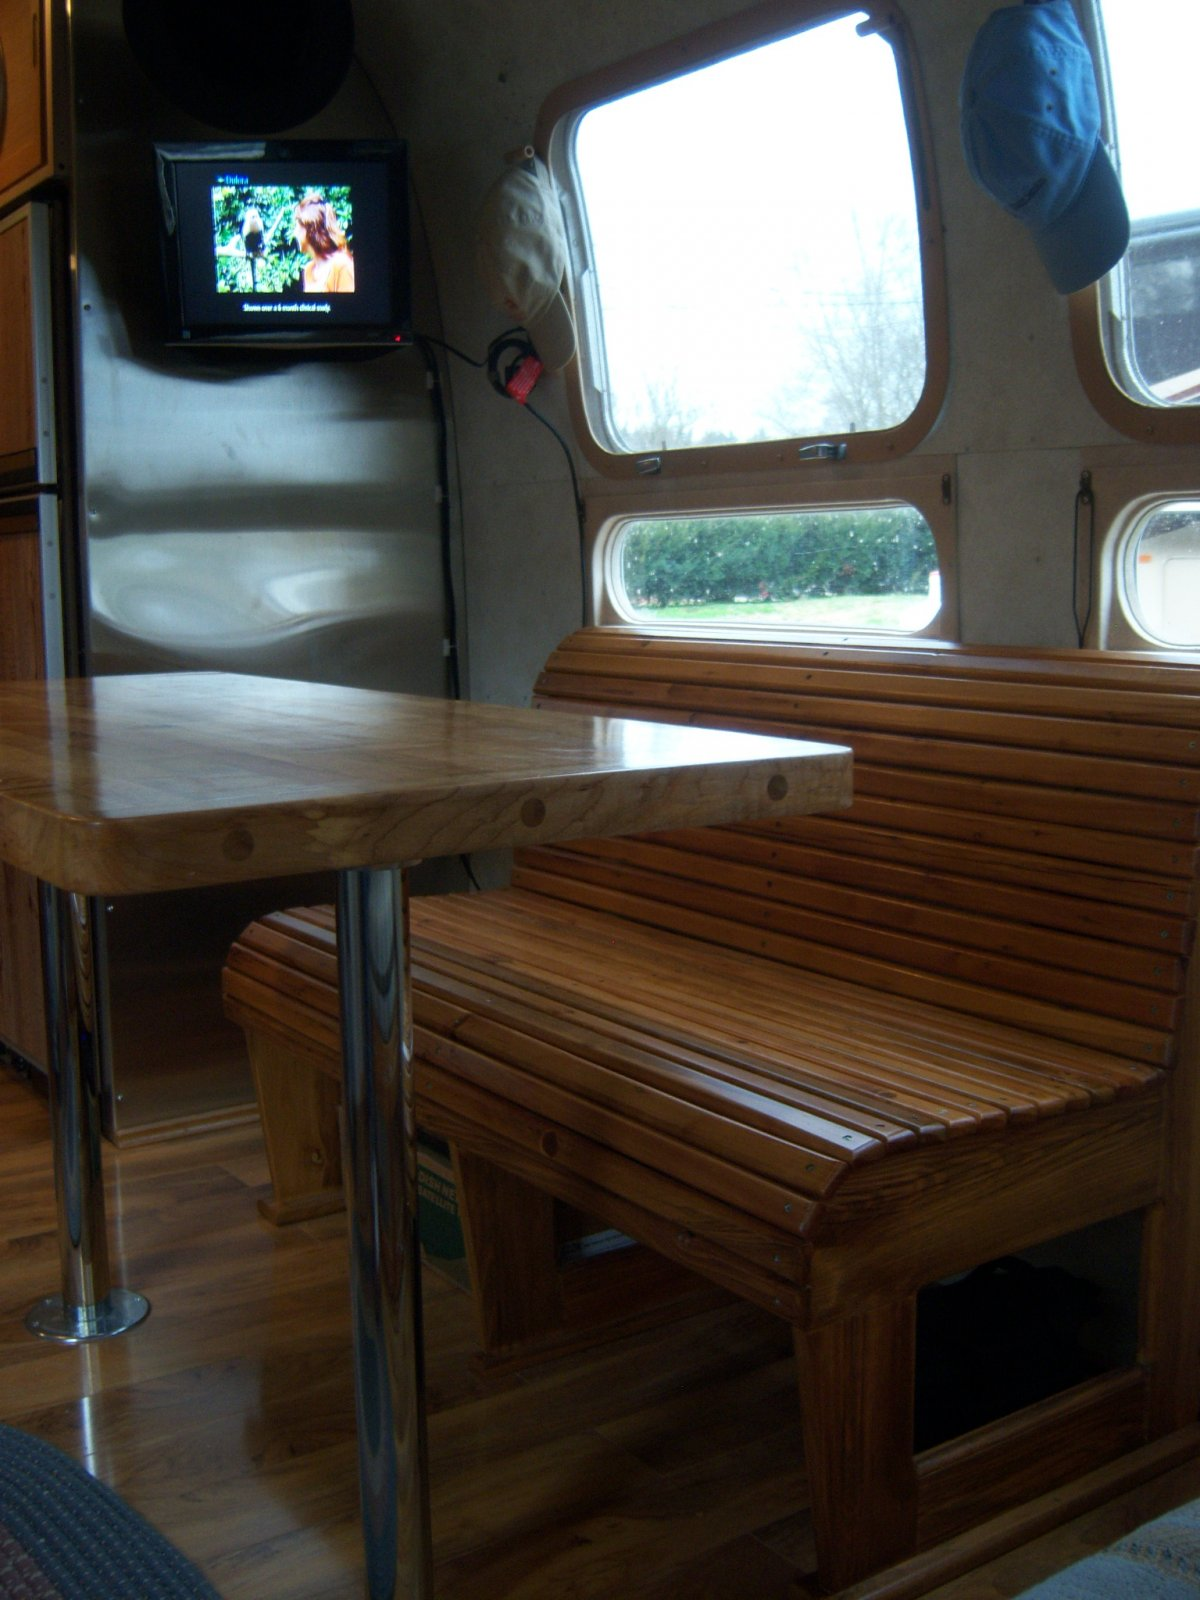 Click image for larger version  Name:Airstream Interior 009.jpg Views:117 Size:231.3 KB ID:146184